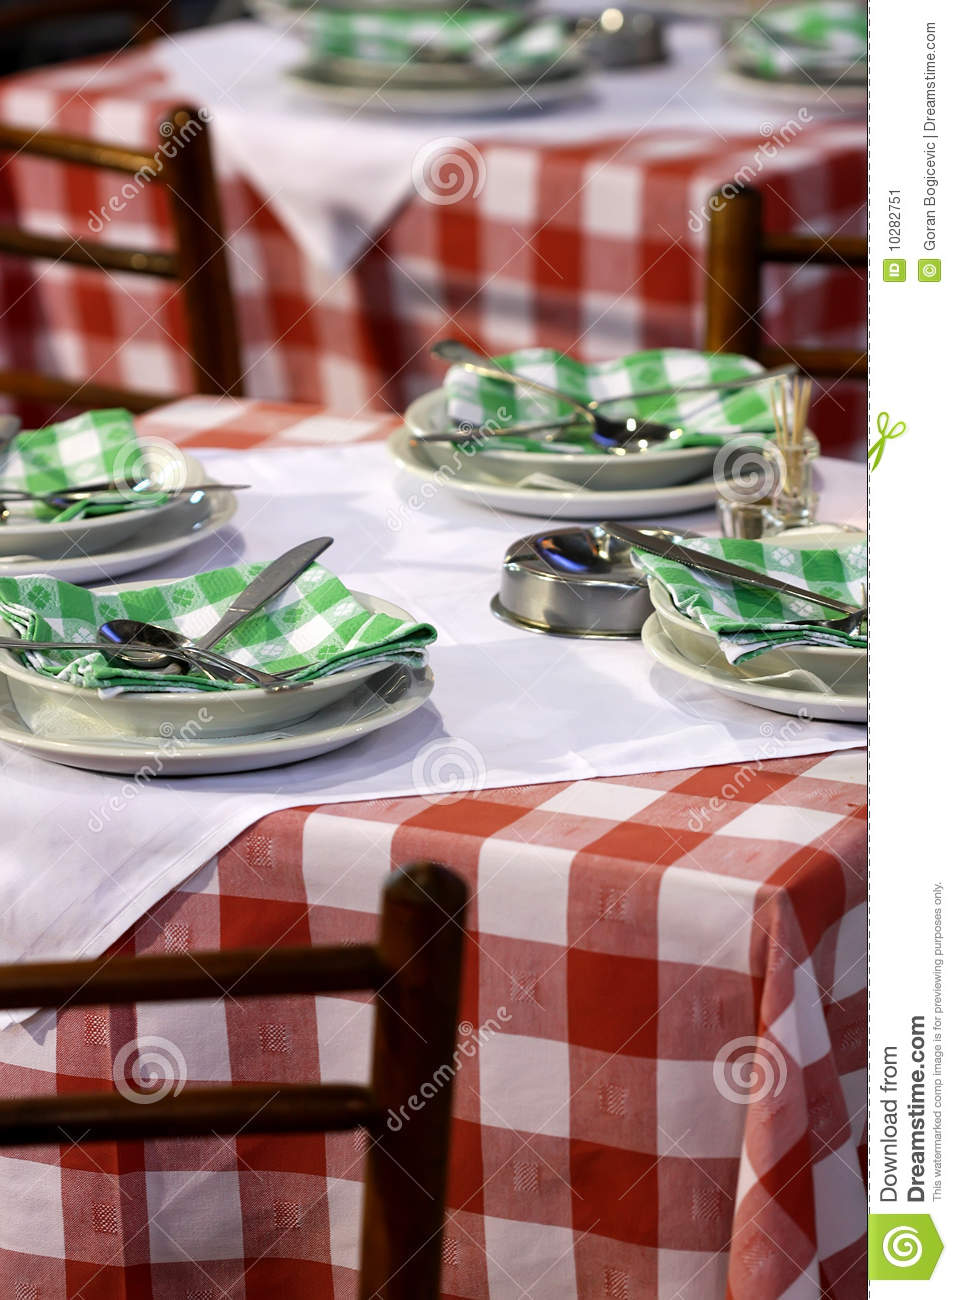 Download Restaurant stock image. Image of vintage, chairs, meal - 10282751